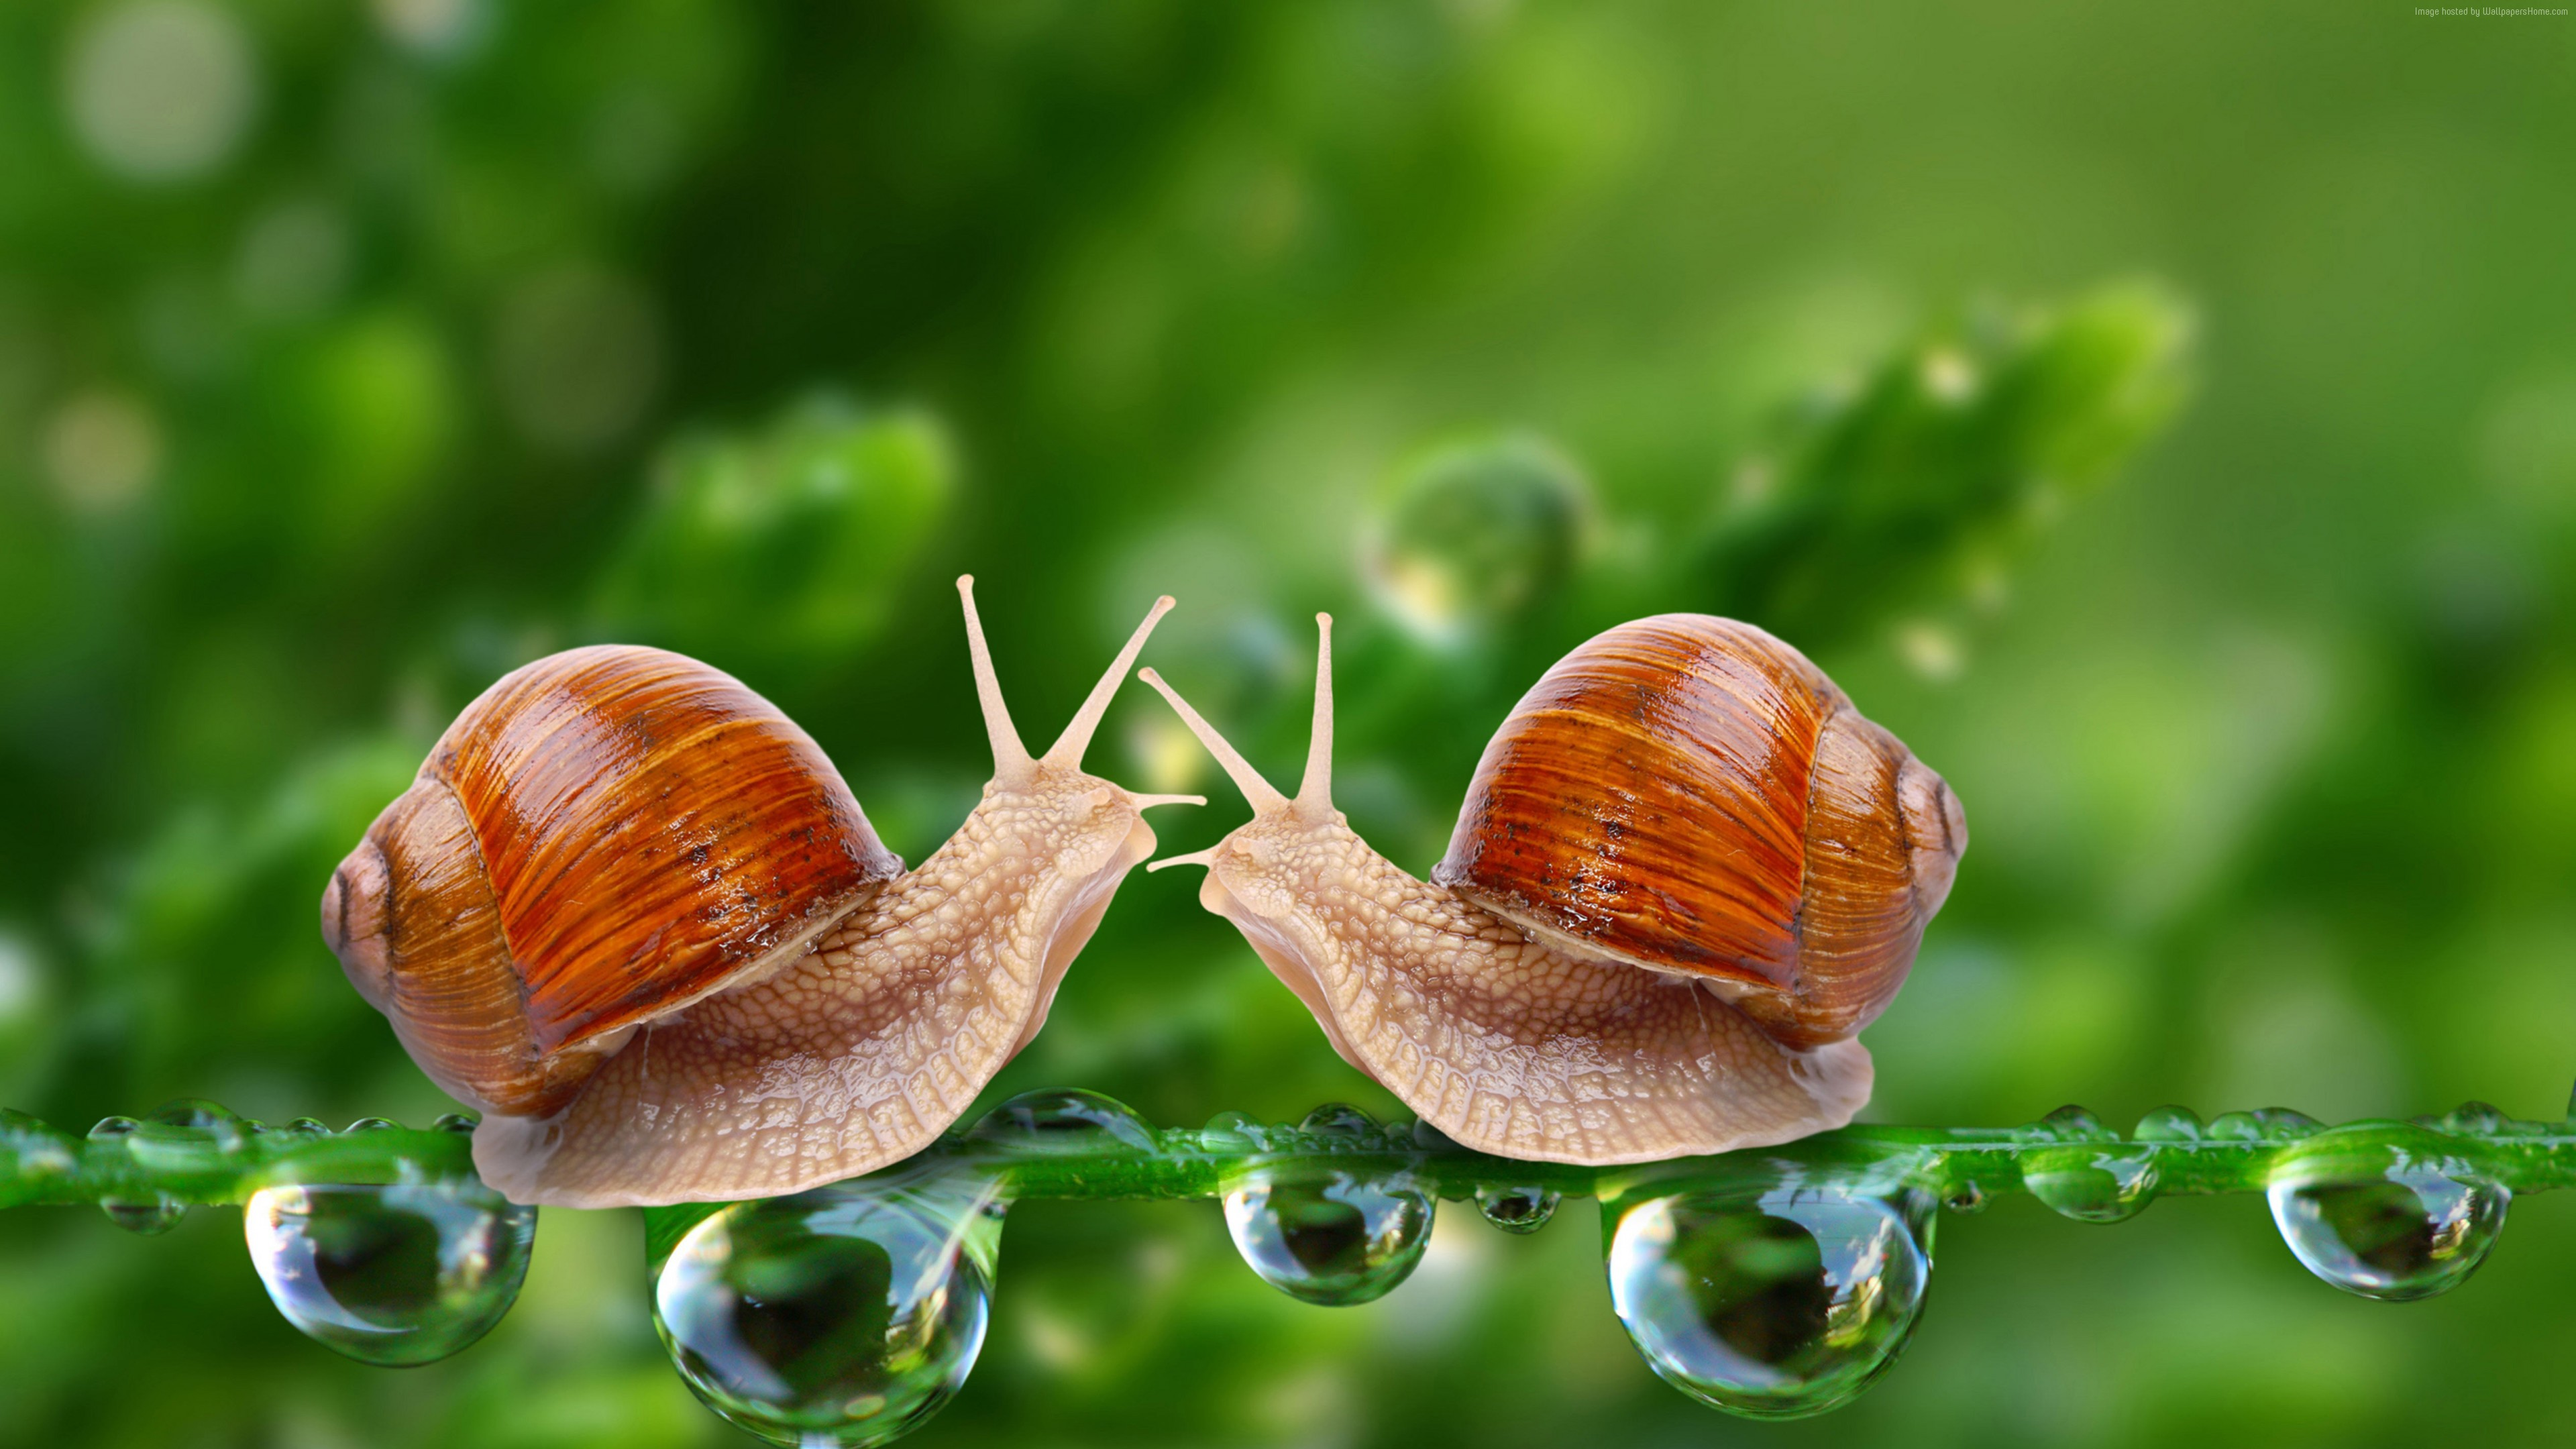 Wallpaper Snail, 5k, 4k wallpaper, water drops, green, nature, insects, close, Animals